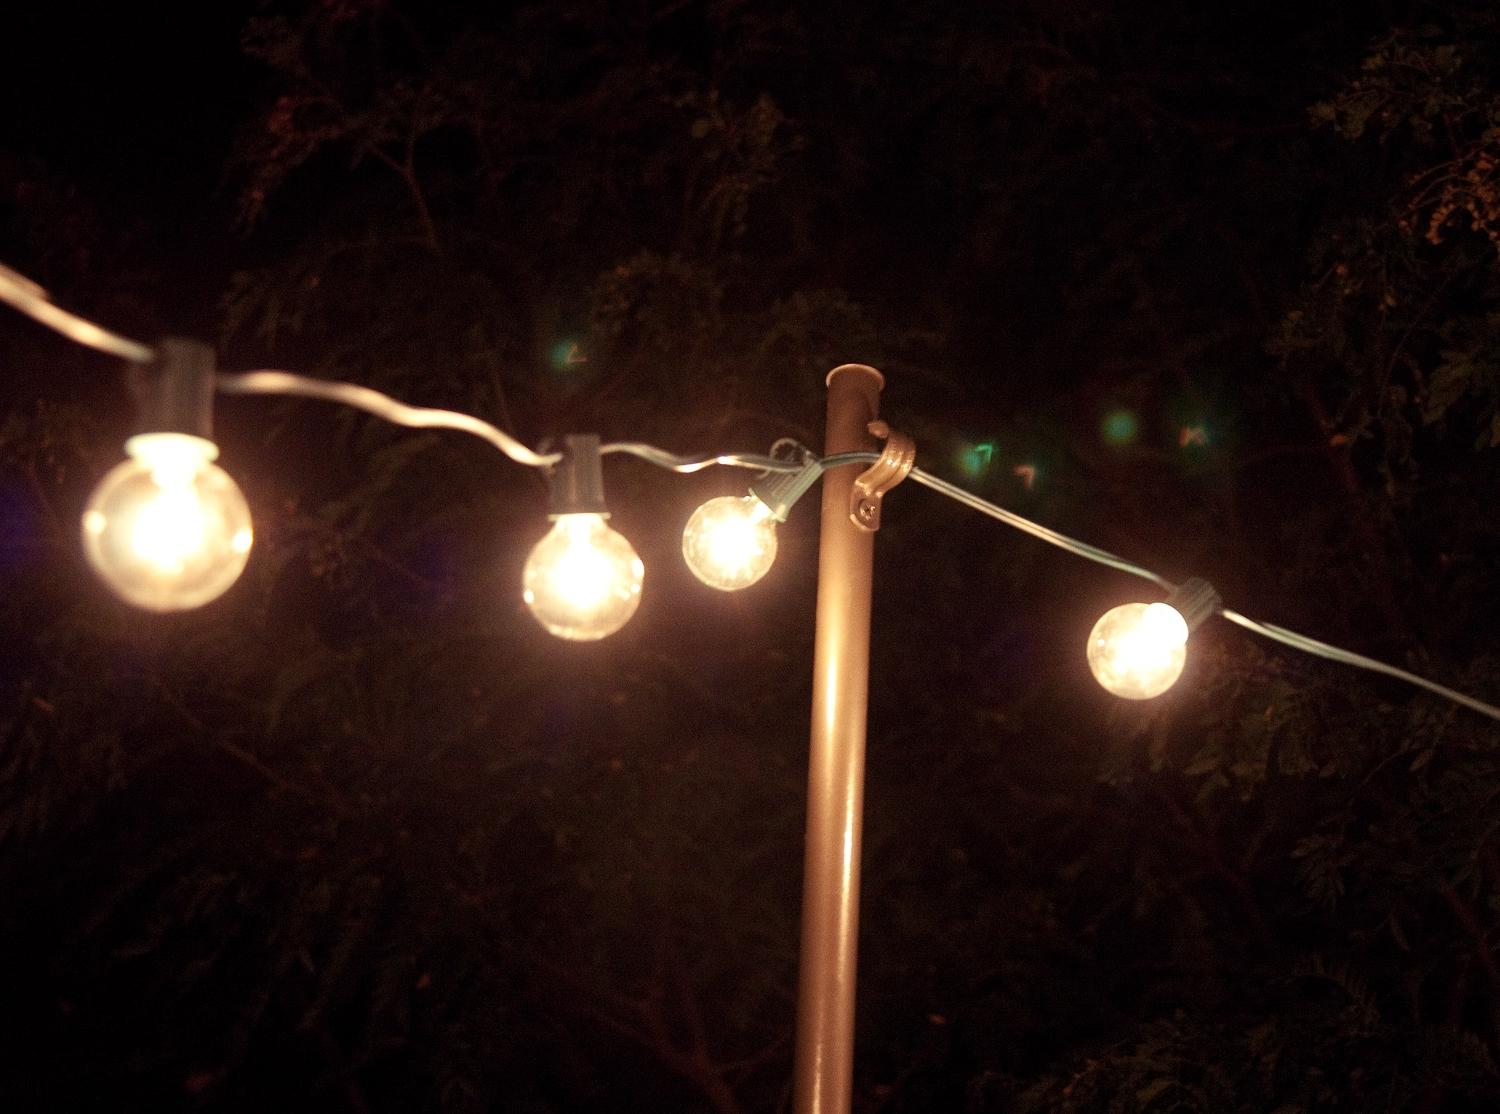 Trendy Popular Of Outdoor Patio Lights String Bright July Diy Outdoor With Regard To Hanging Outdoor String Lights At Home Depot (View 18 of 20)